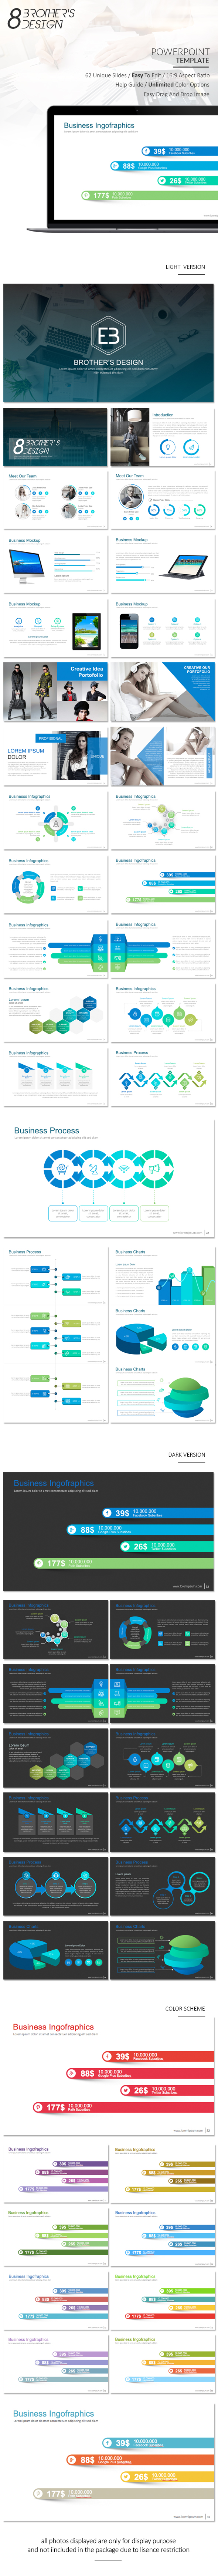 EB Powerpoint Template (PowerPoint Templates)